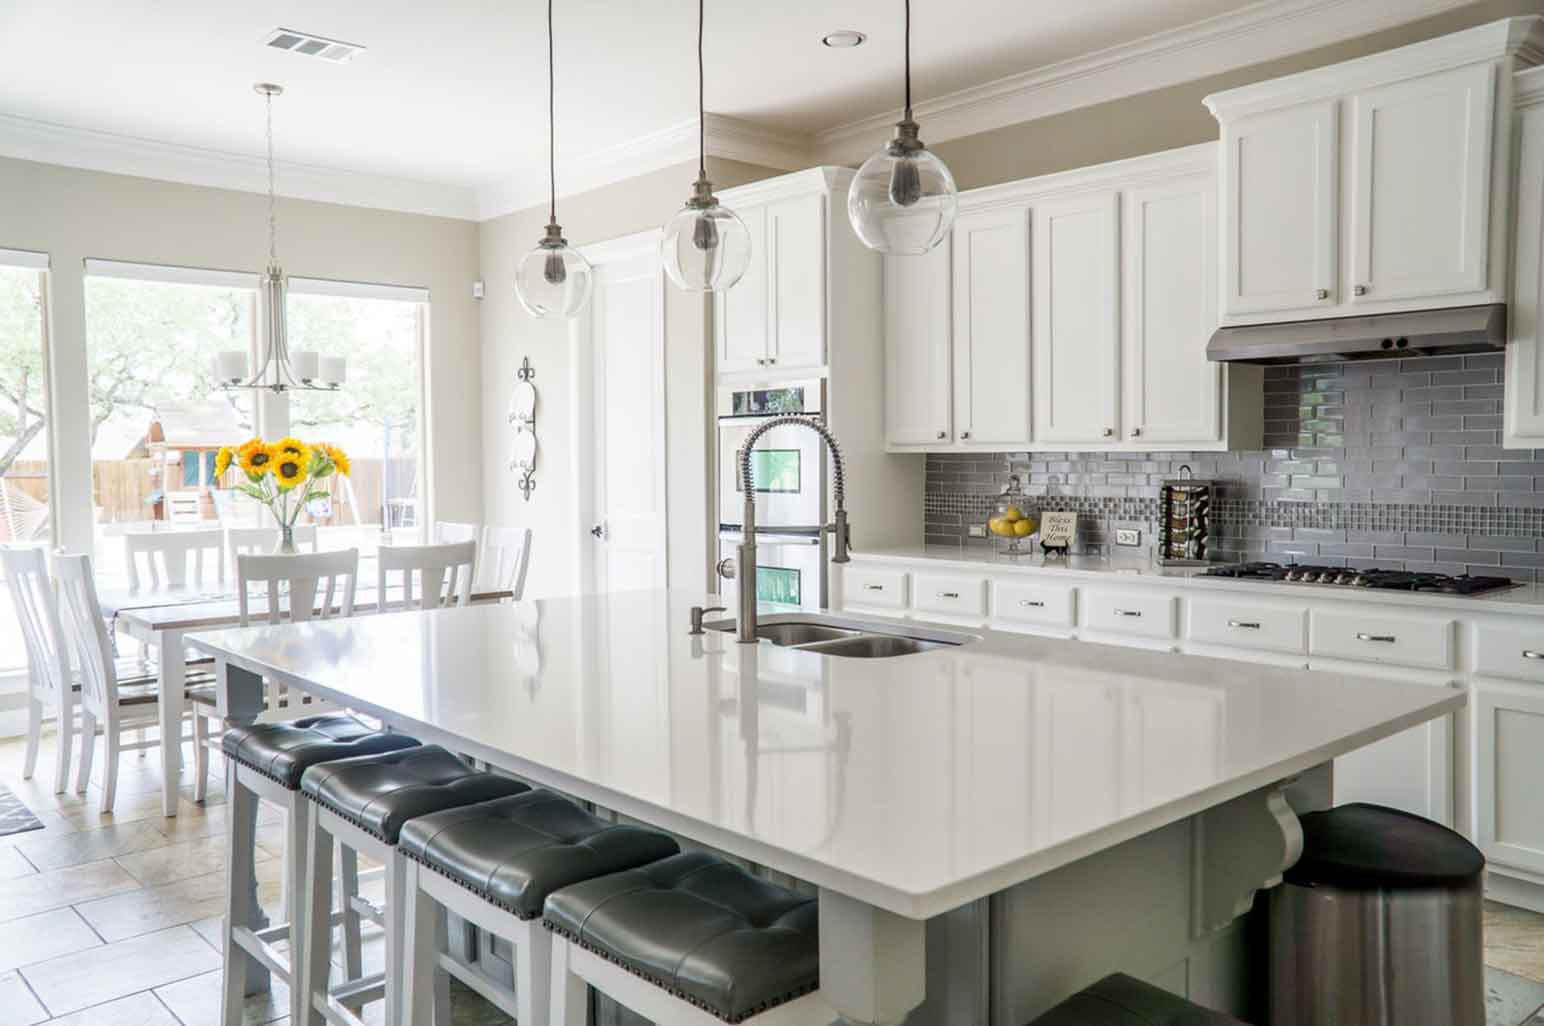 Home Decor Ideas That Will Make Your House More Livable